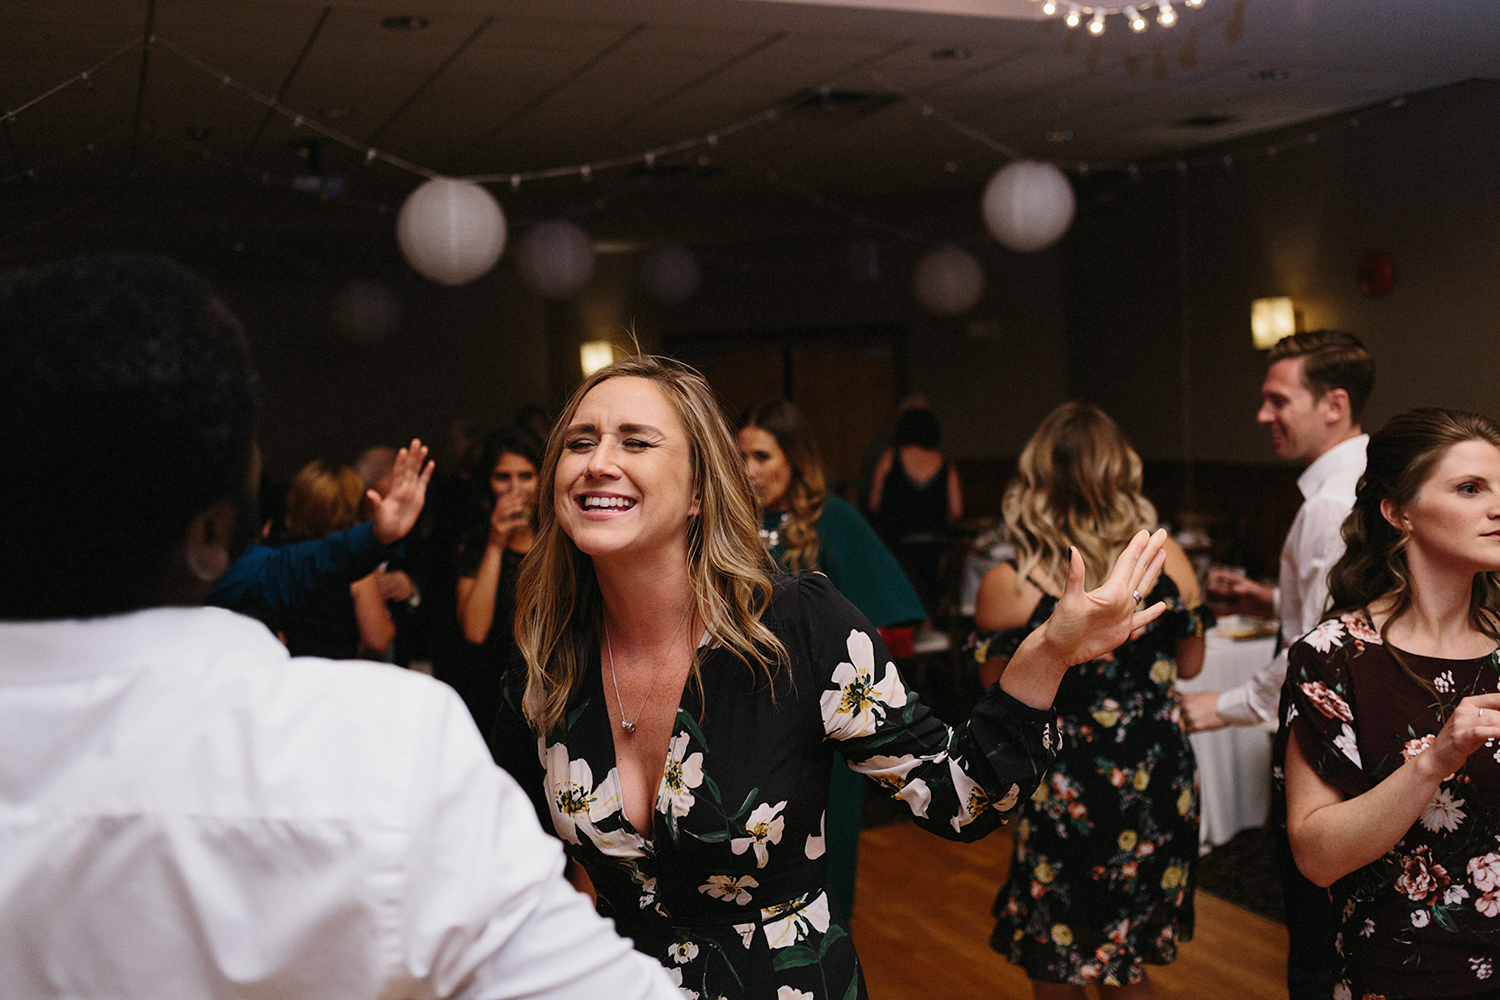 candid-guests-dancing-reception-At-Eganridge-Resort-Venue-Muskoka-Ontario-Wedding-Photography-by-Ryanne-Hollies-Photography-Toronto-Documentary-Wedding-Photographer.jpg